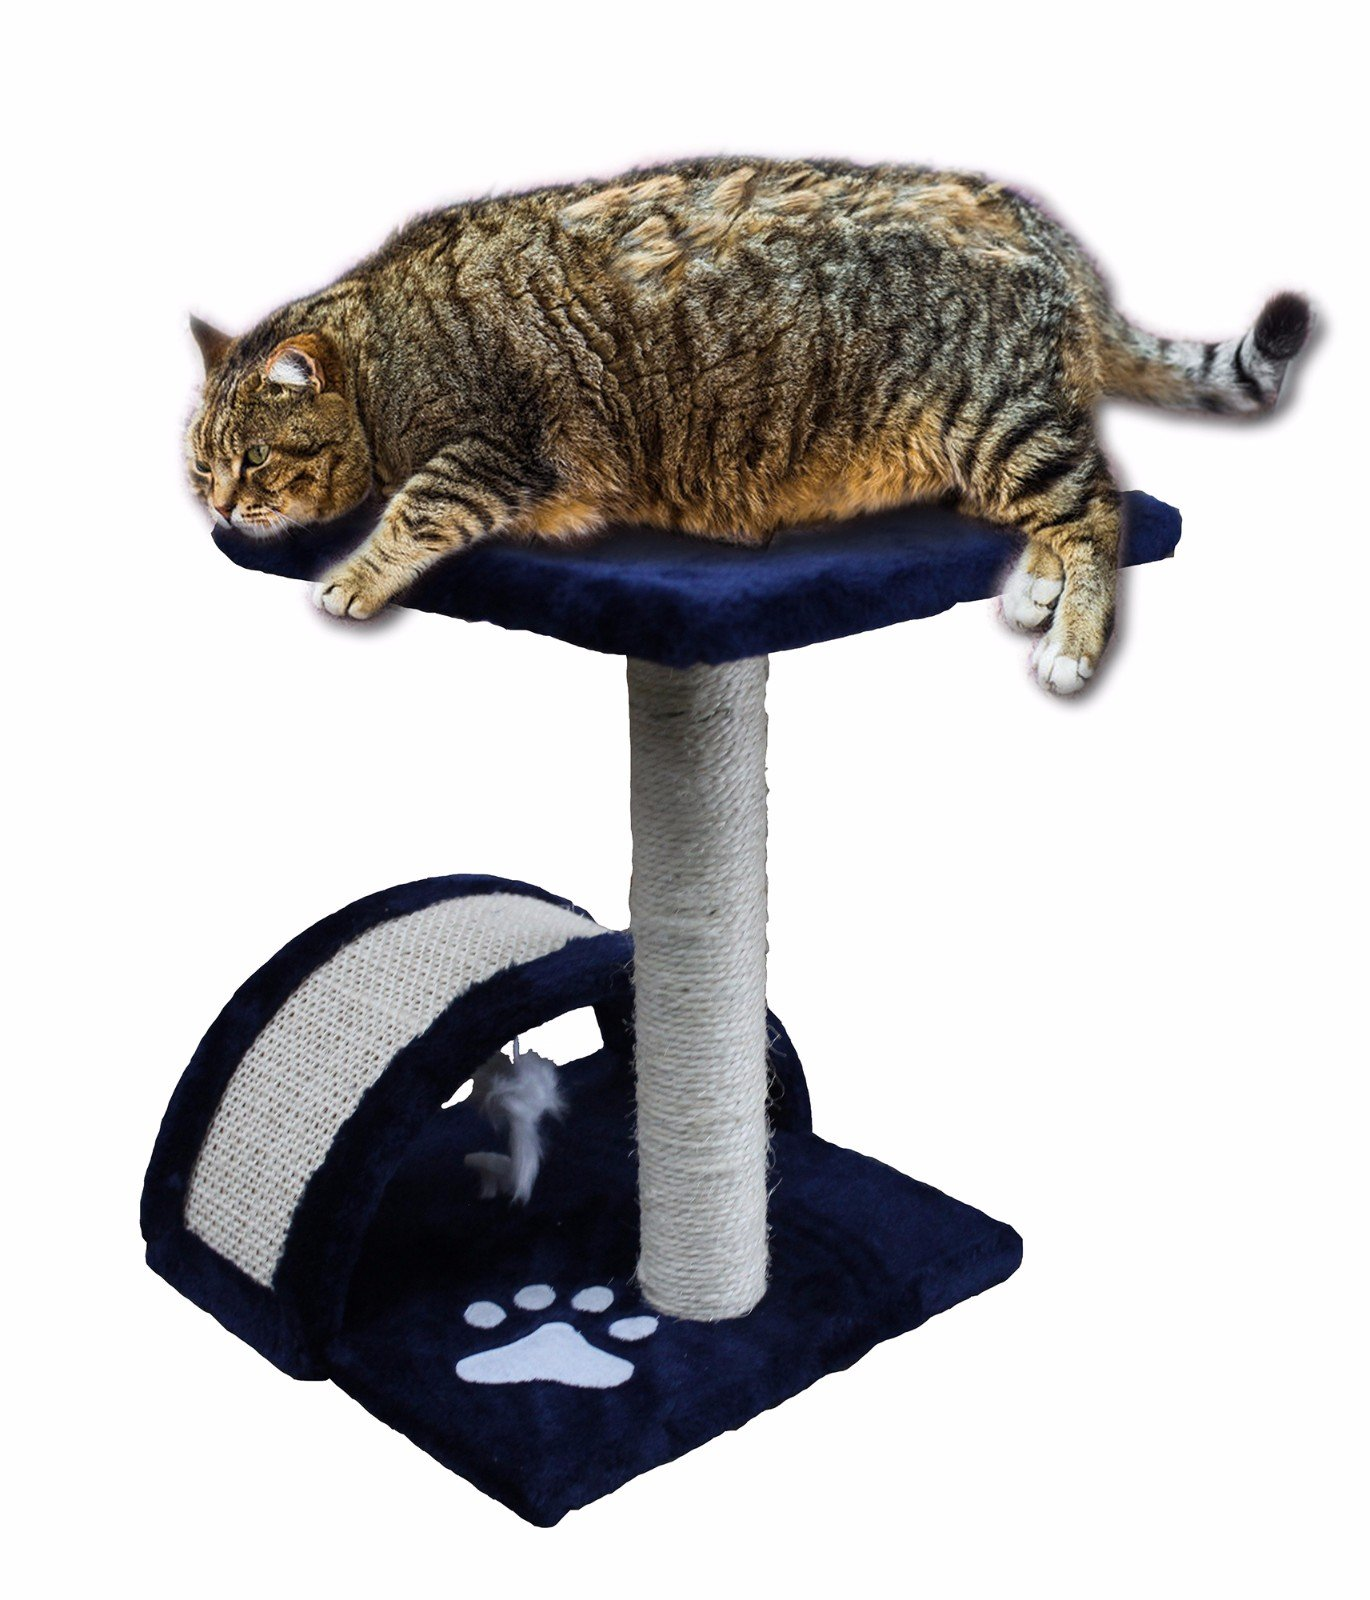 CloudWorks 15'' Small Cat Tree Sisal Scratching Post Furniture Playhouse Pet Bed Kitten Toy Cat Tower Condo for Kittens (Navy Blue) by HIDING